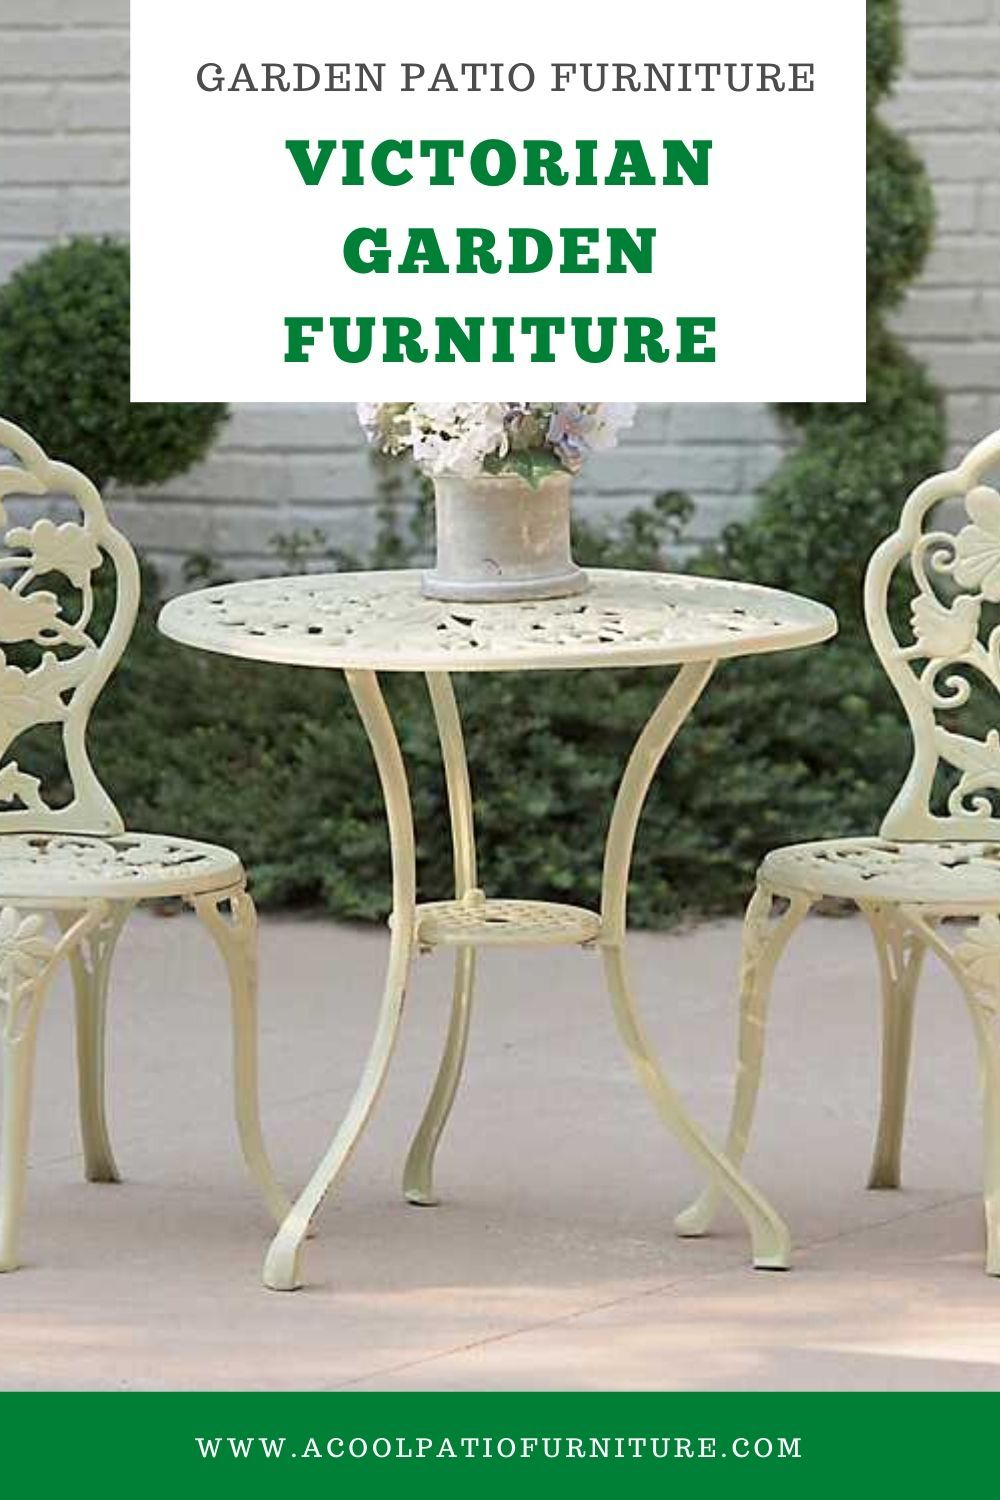 Victorian Garden Furniture That is as a result of the